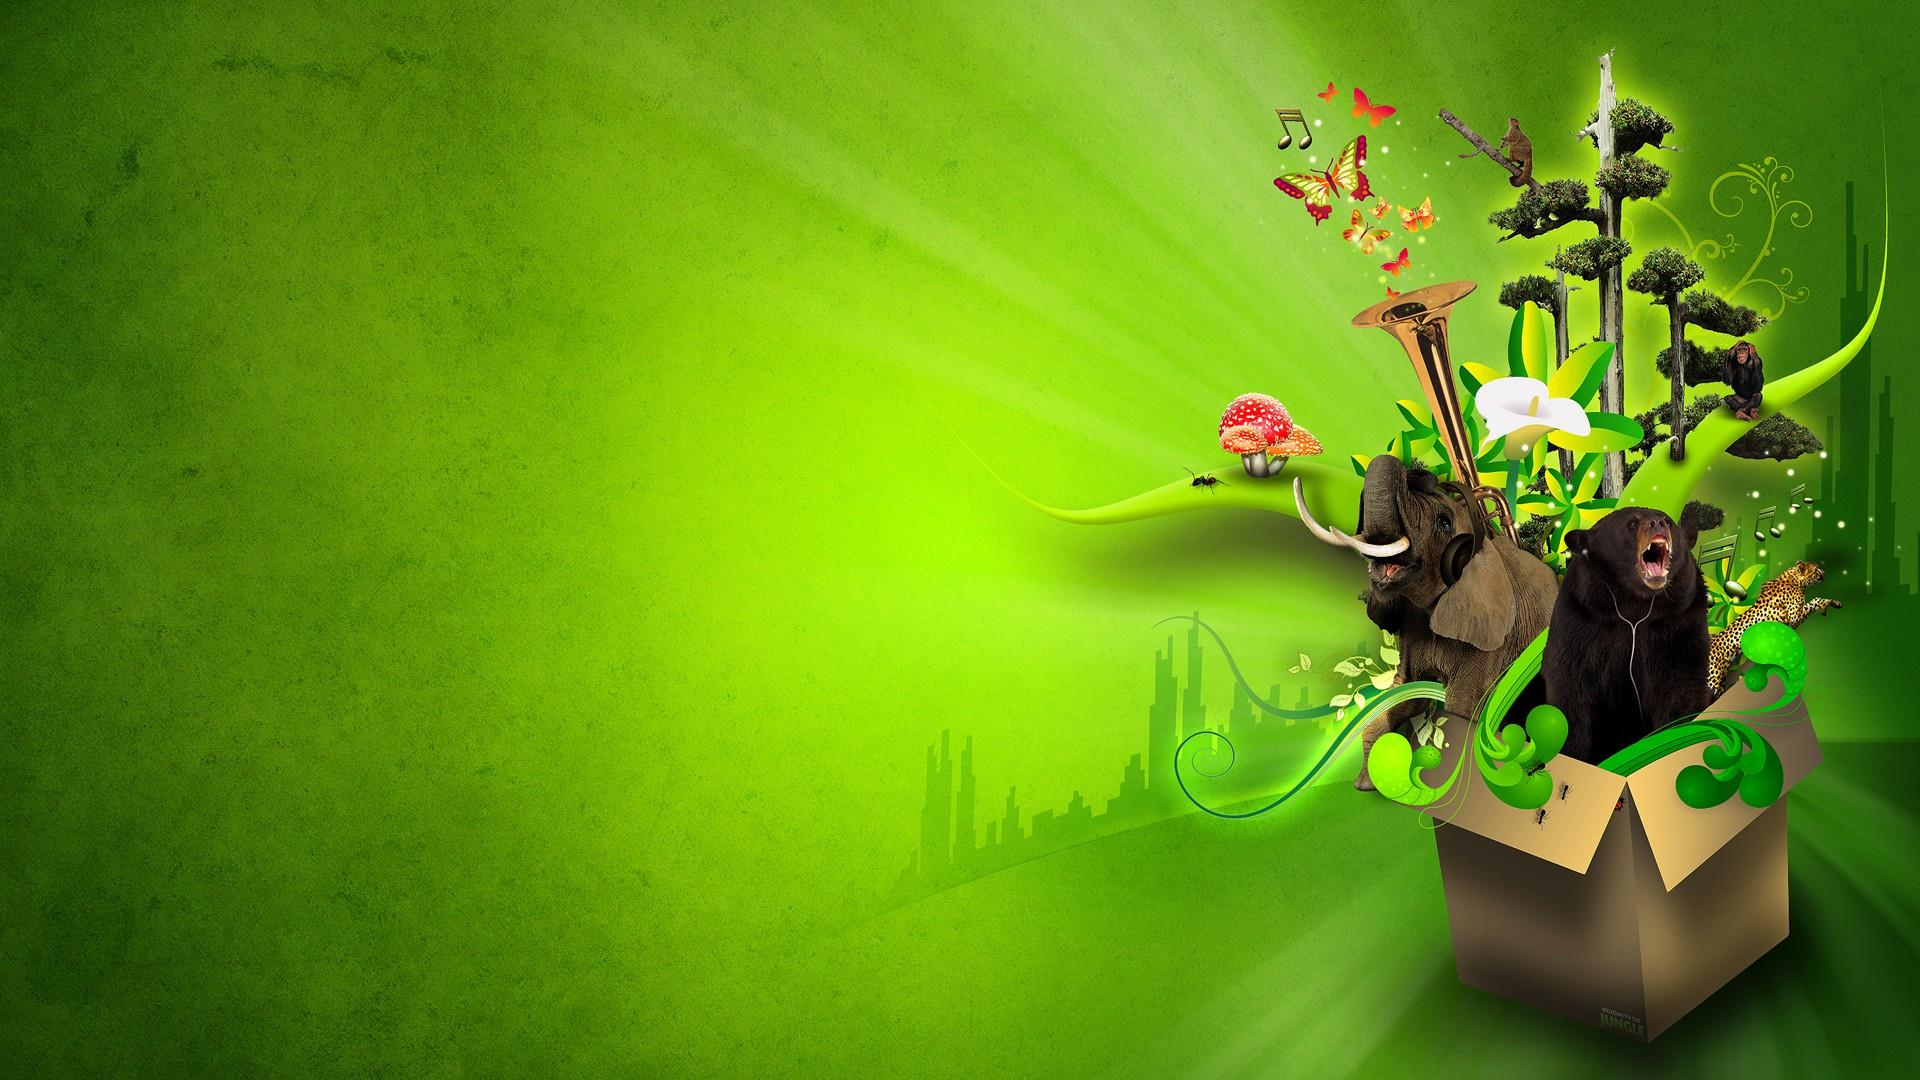 HD Cartoon Wallpapers - Wallpaper Cave